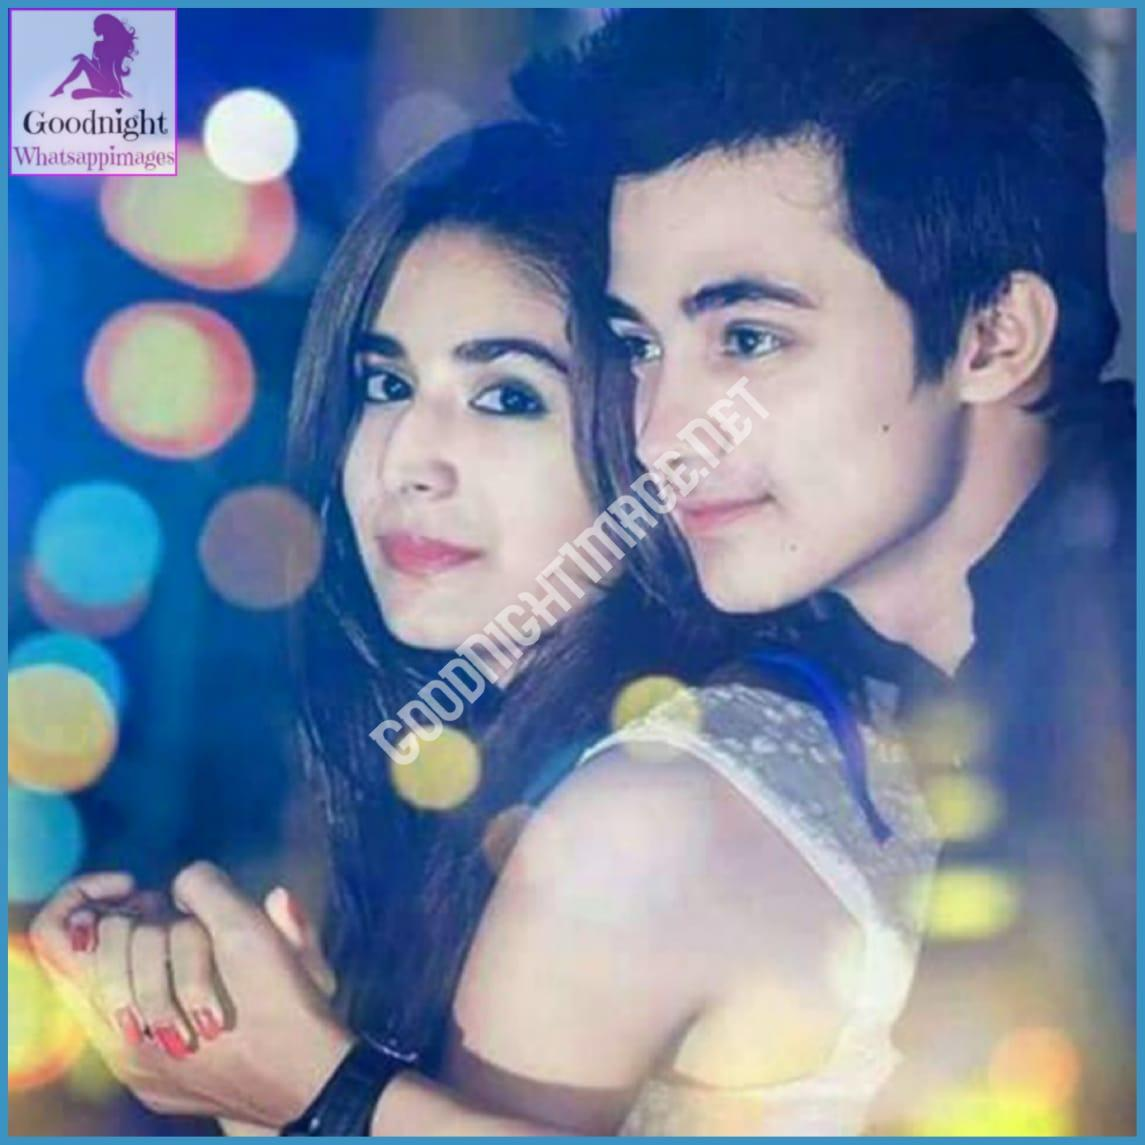 31 Cute Love Couple Whatsapp Dp Images Wallpaper Photo Free Download